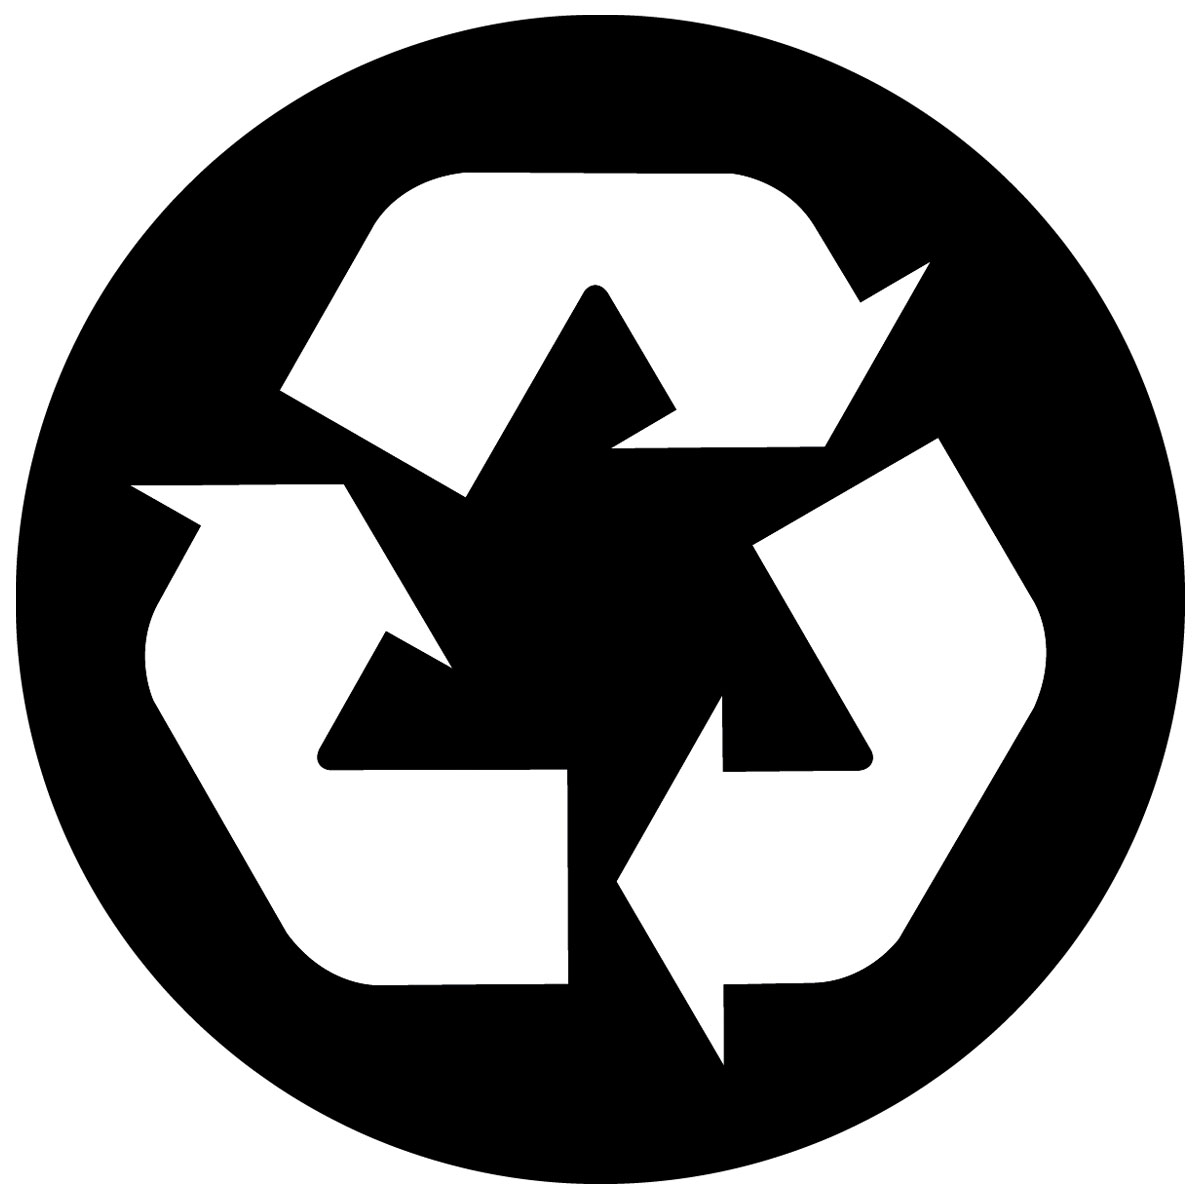 Recycle Icon Vector Free Download - ClipArt Best: cliparts.co/recycling-icon